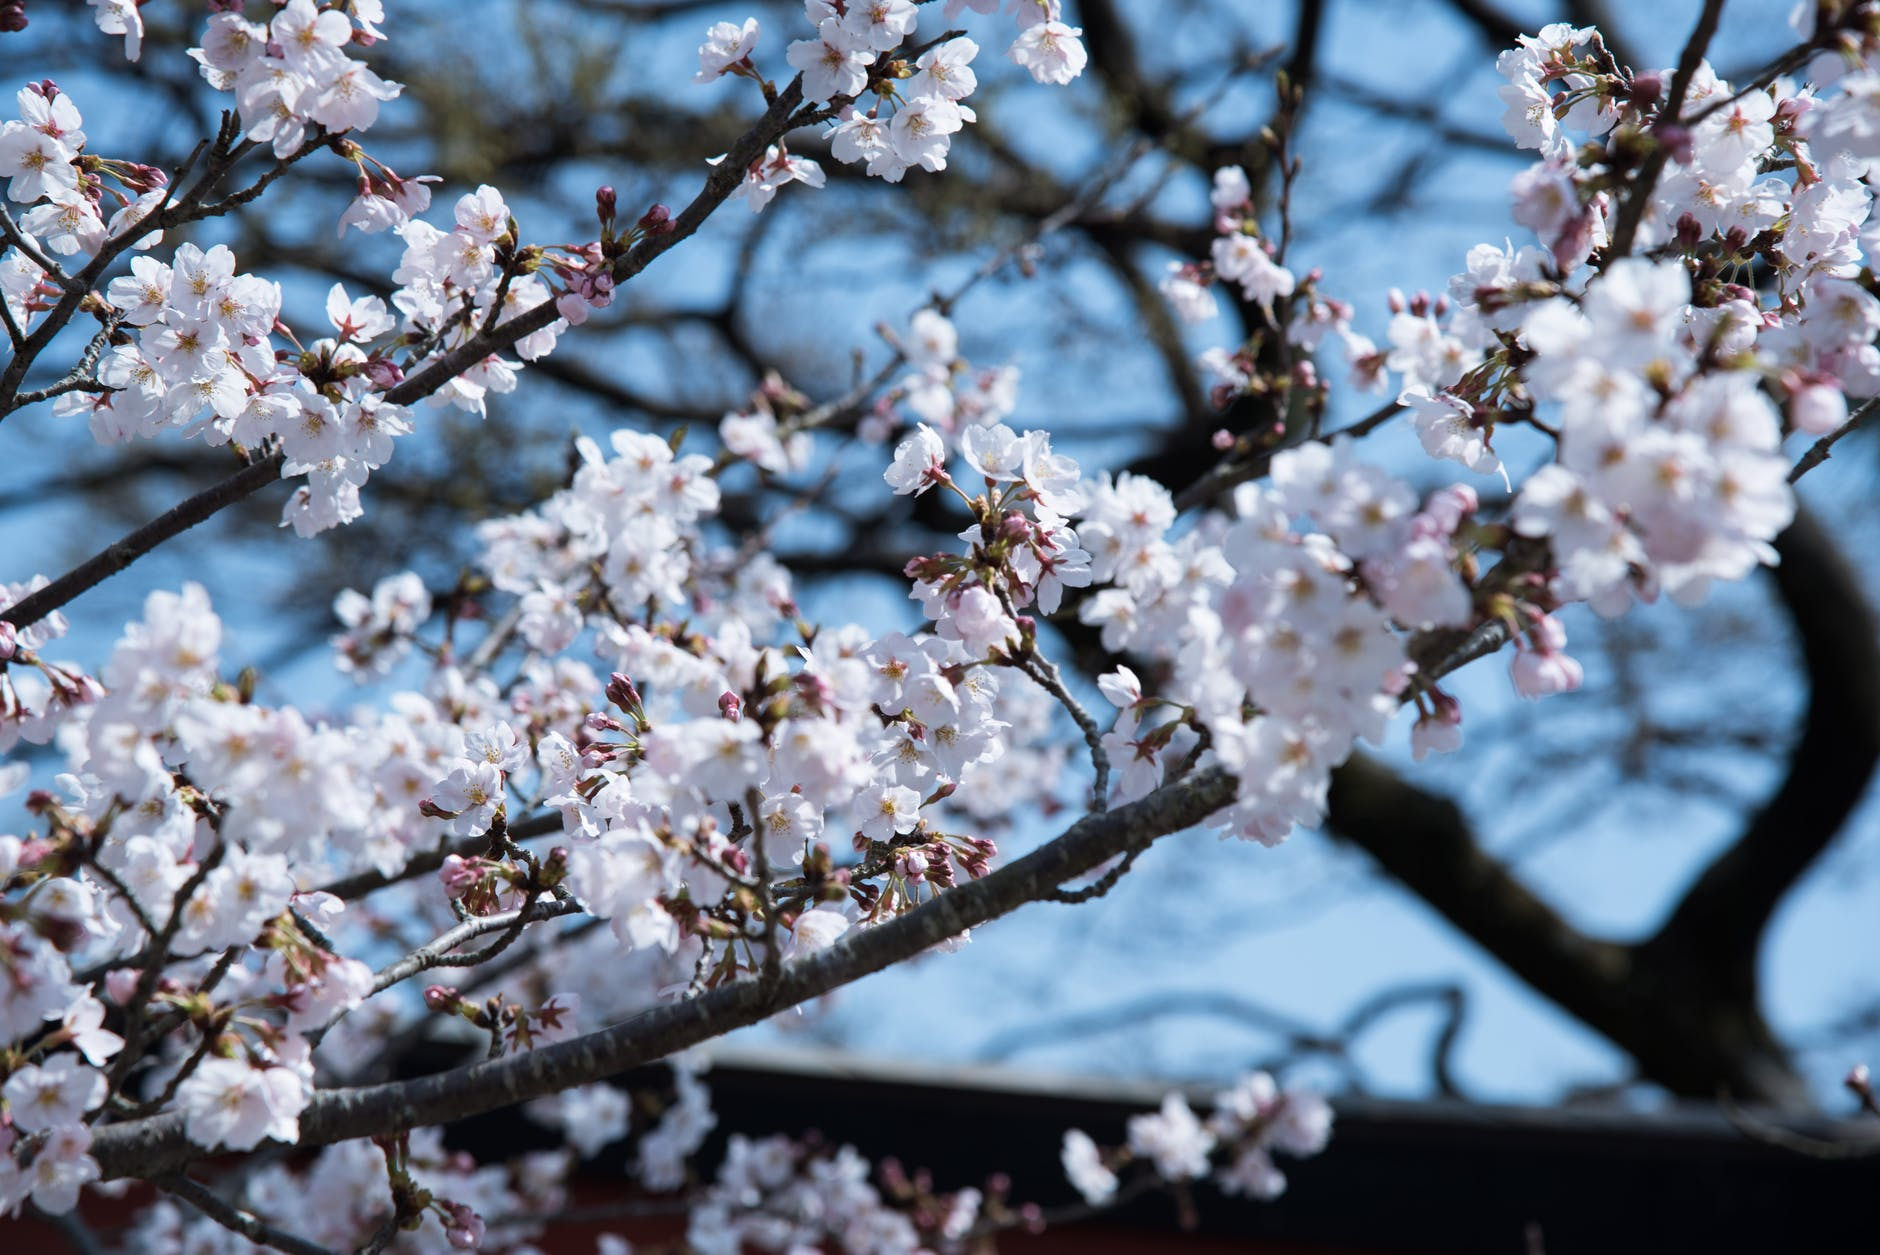 Cherry tree in blossom, with white flowers